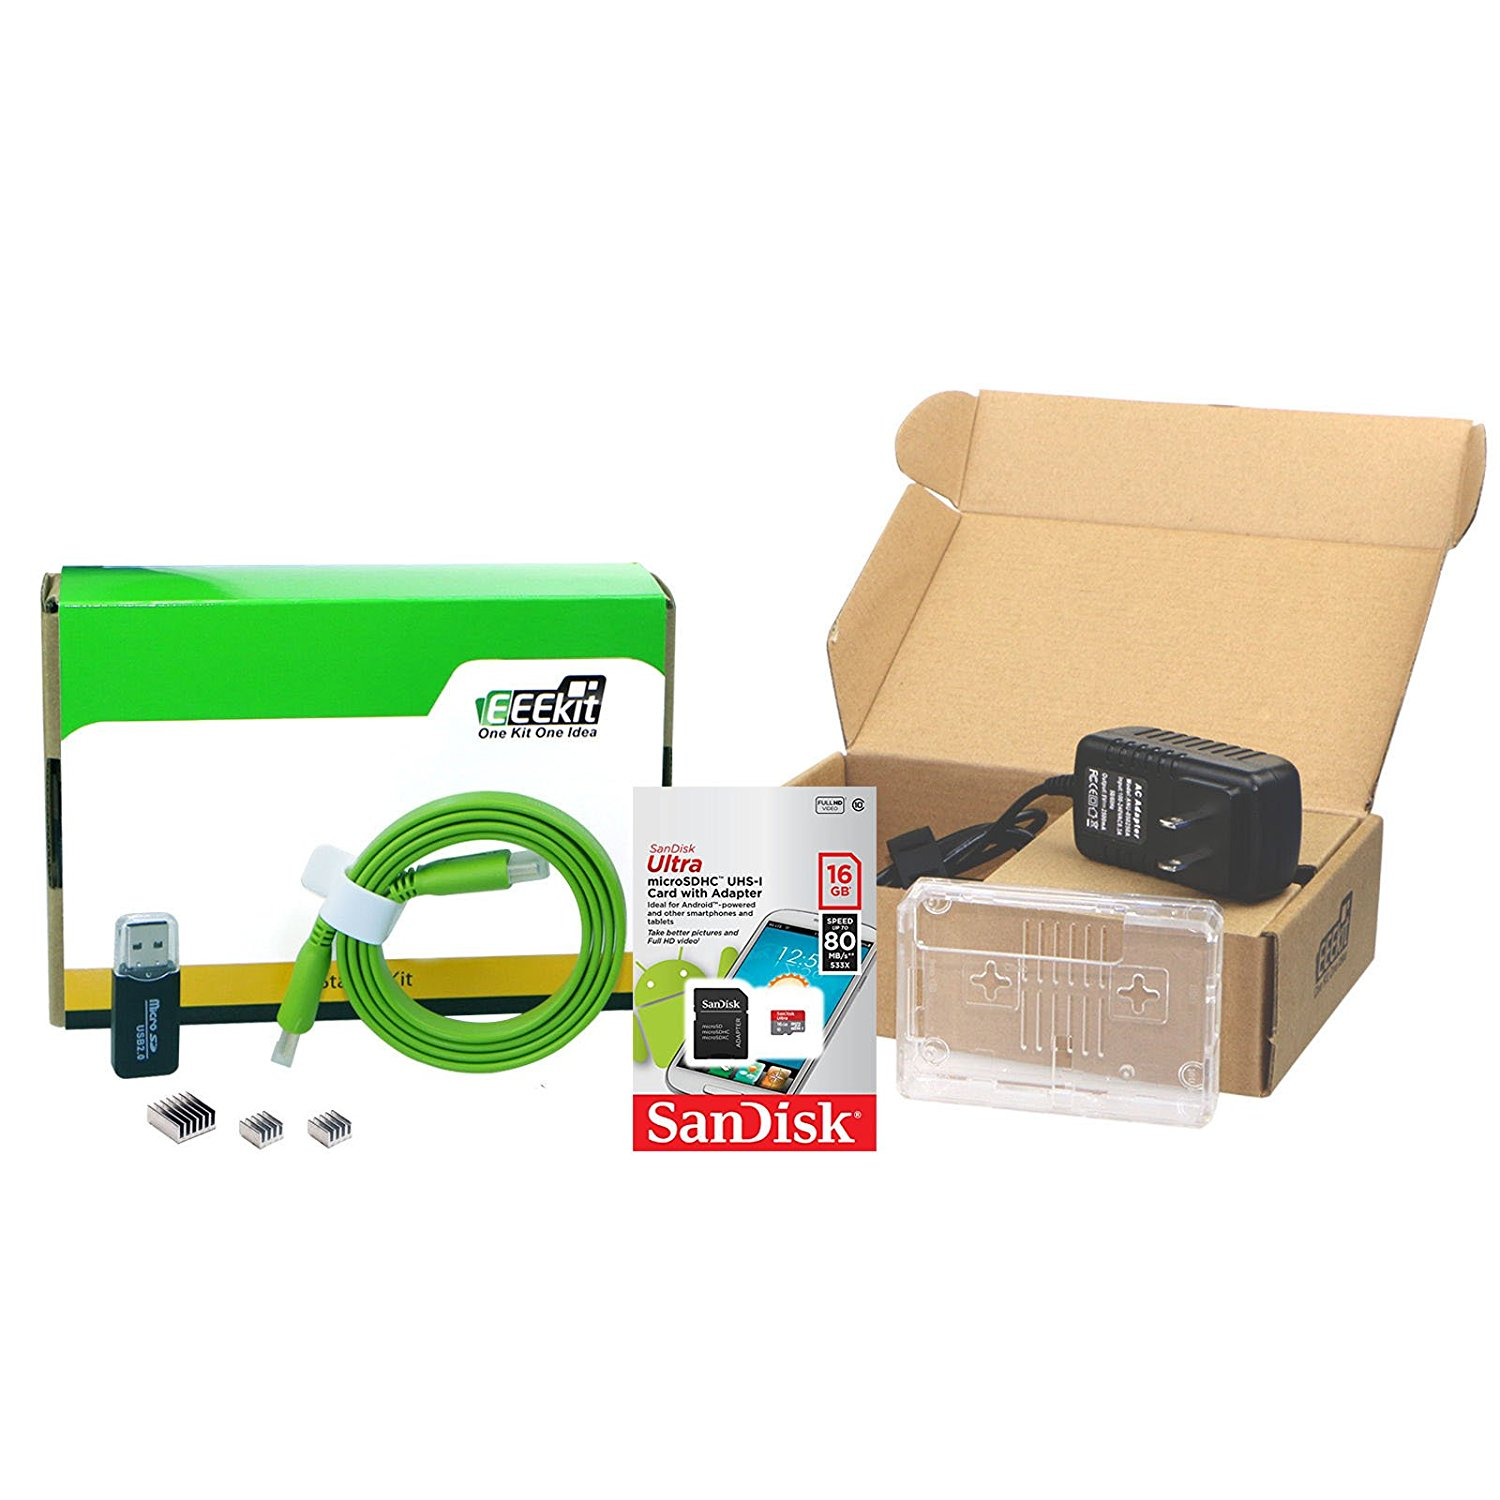 EEEKit 6in1 Starter Kit for Raspberry Pi 3, Clear Case,SanDisk 16GB Micro SDHC Memory Card, 2.5A Power Supply, Micro HDMI Cable,Heatsink,Card Reader